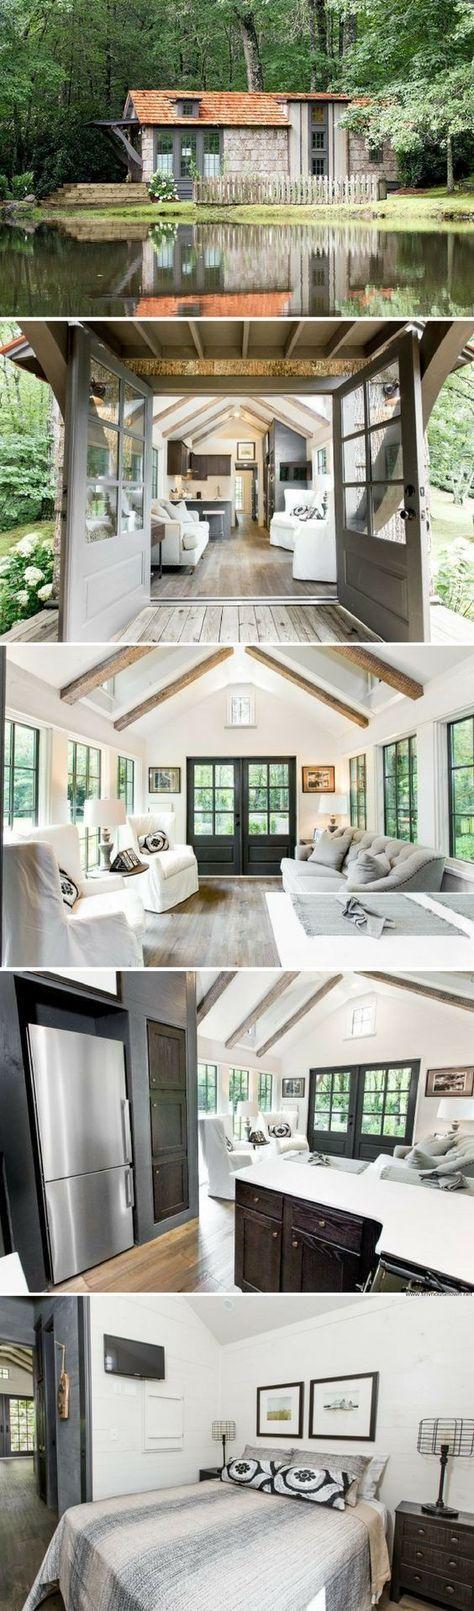 96 Best Tiny House Images On Pinterest Floating Homes, Houseboats